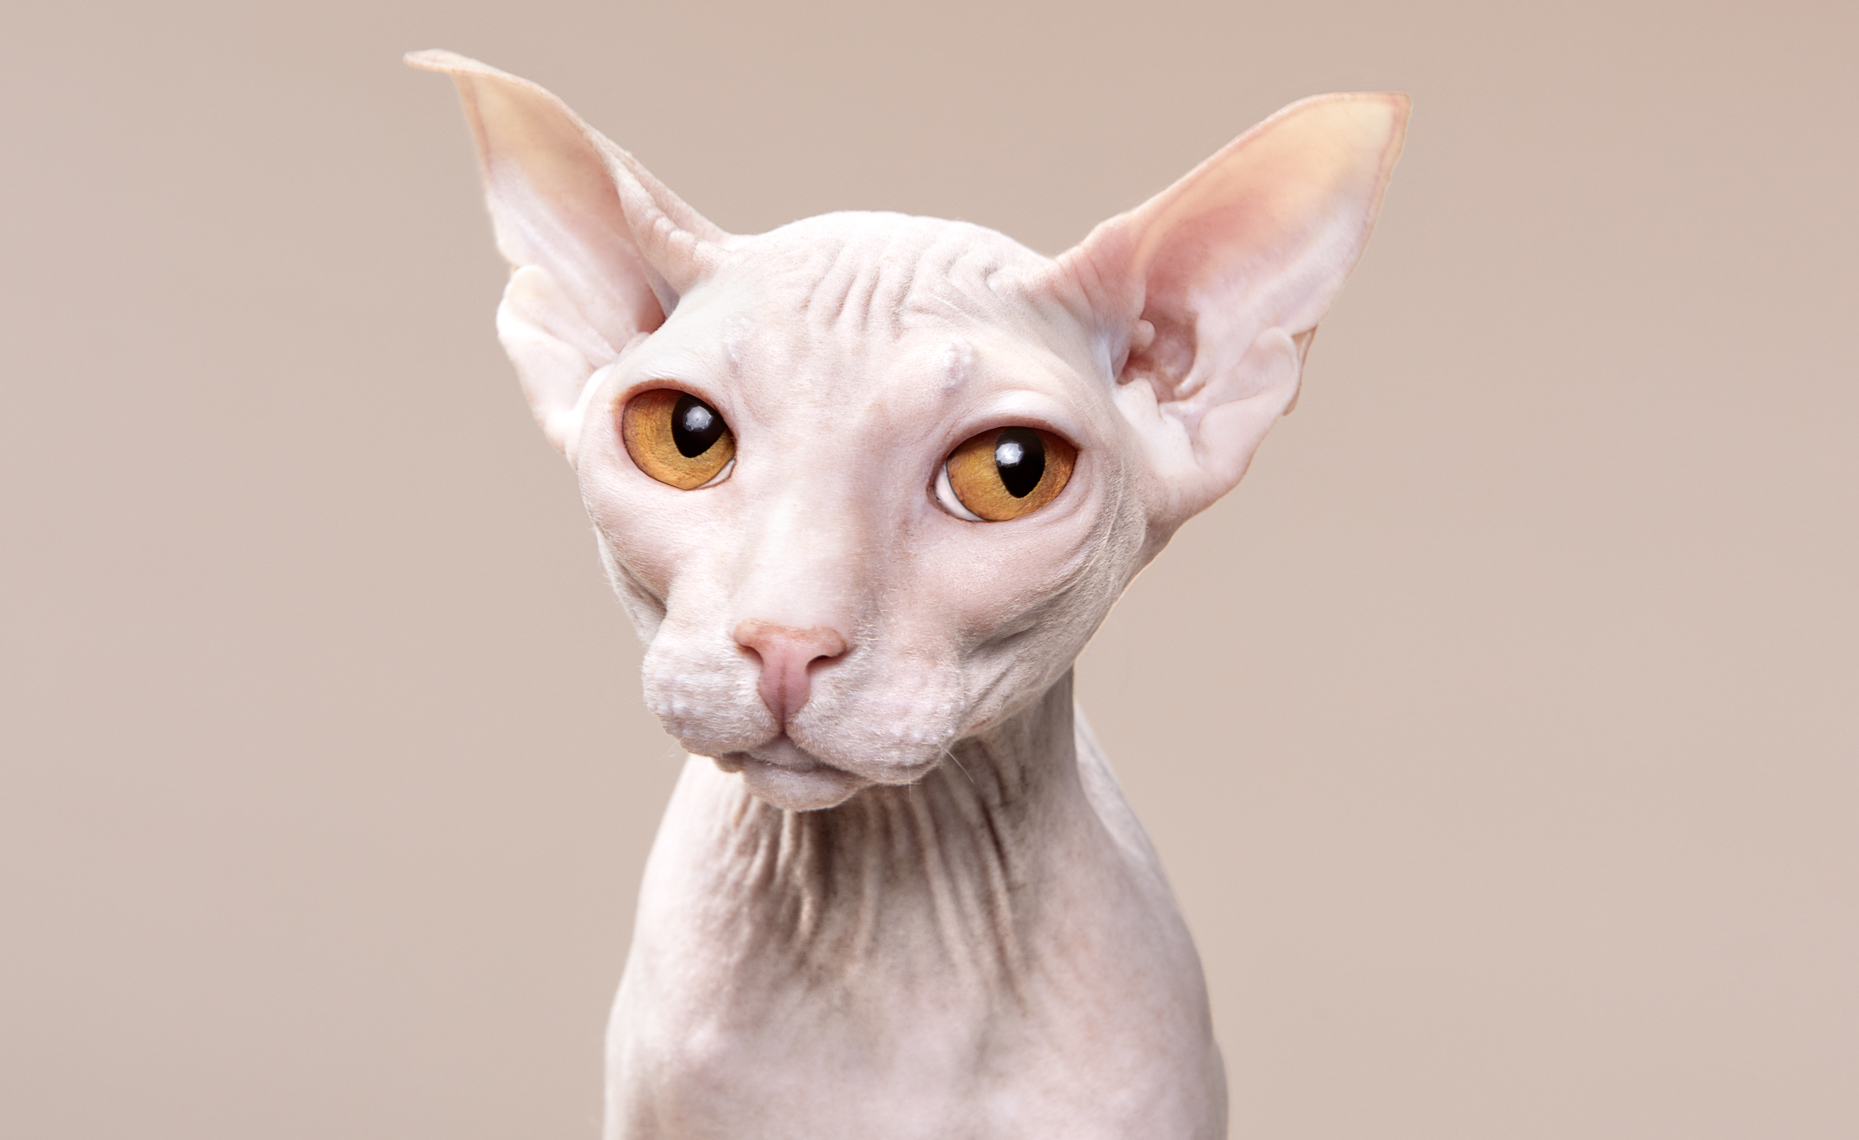 hairless cat portrait